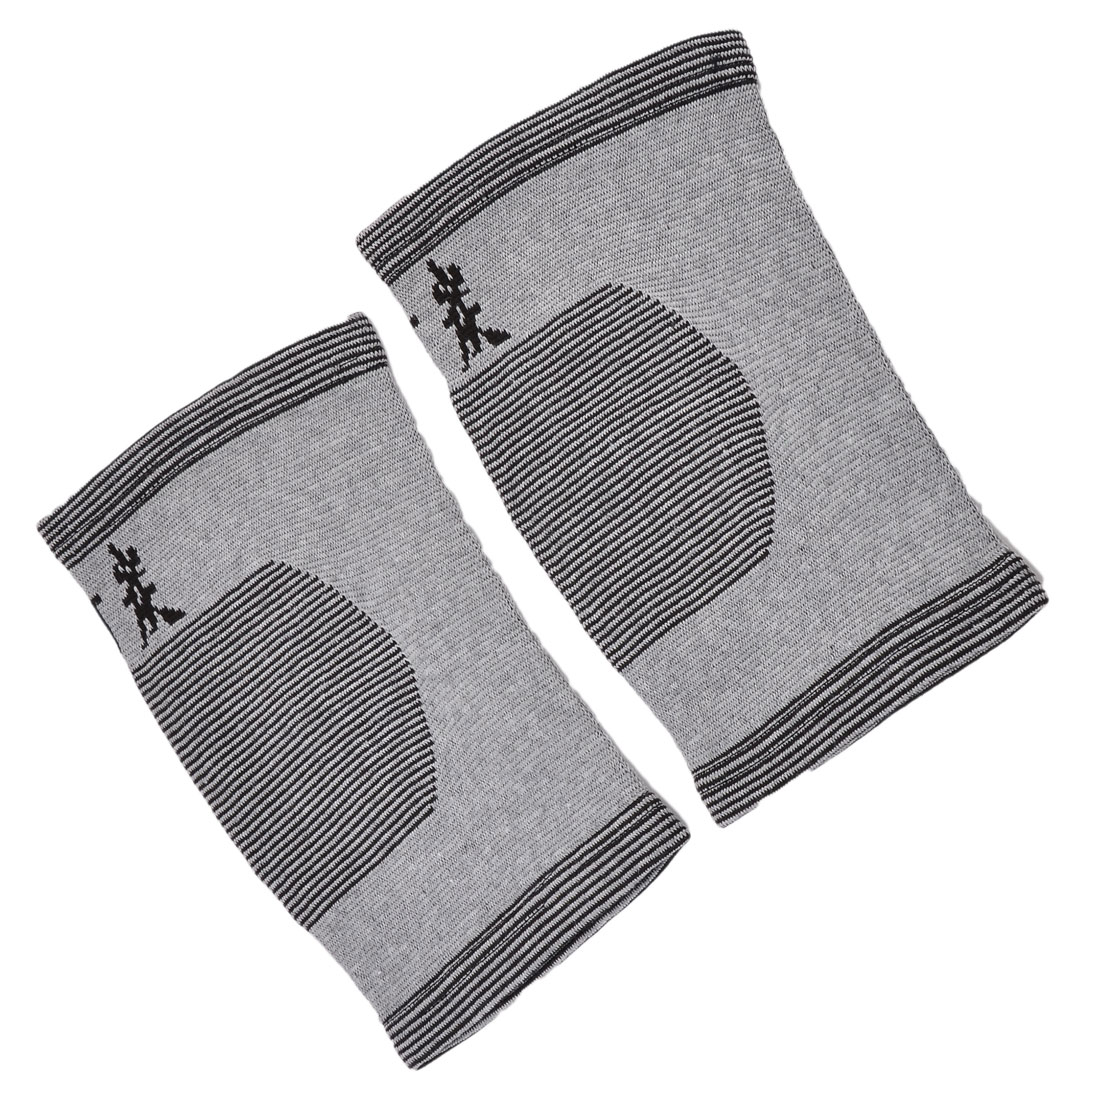 Outdoor Sport Spandex Strips Printed Stretch Knee Support Protector Gray Black Pair